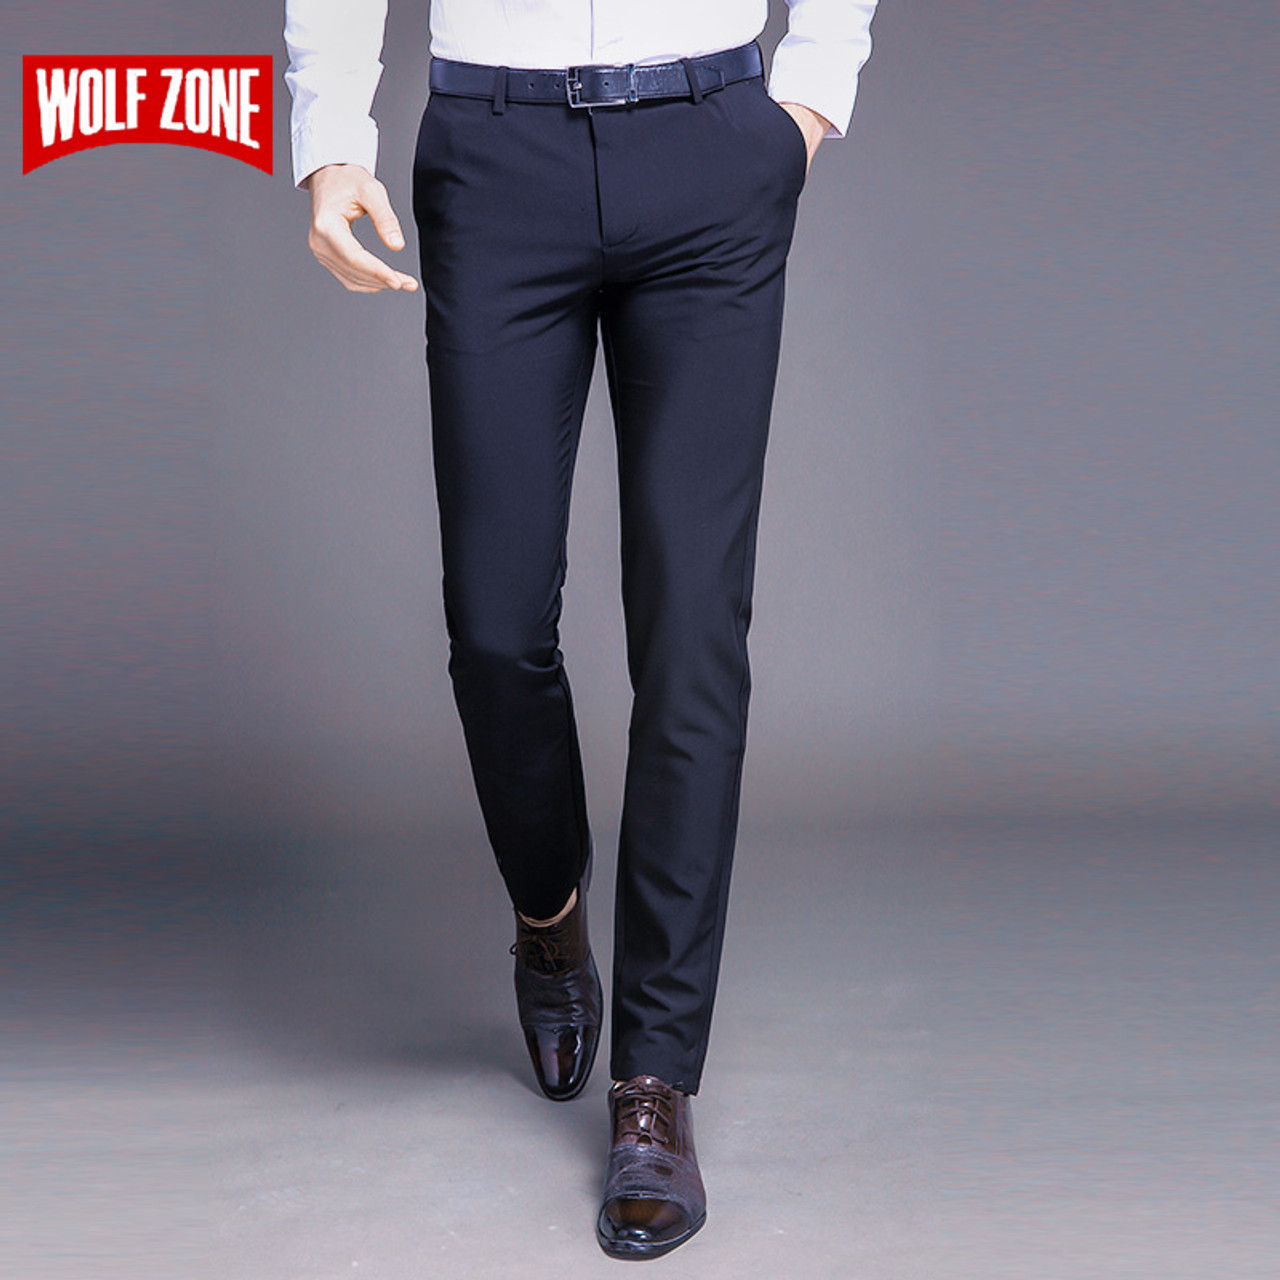 Men's Clothing Pants 2018 New Mens Linen Casual Pants Slim Fit Fashion Business Casual Trousers Male Trouser Full Length Straight Slacks Mens High Safety